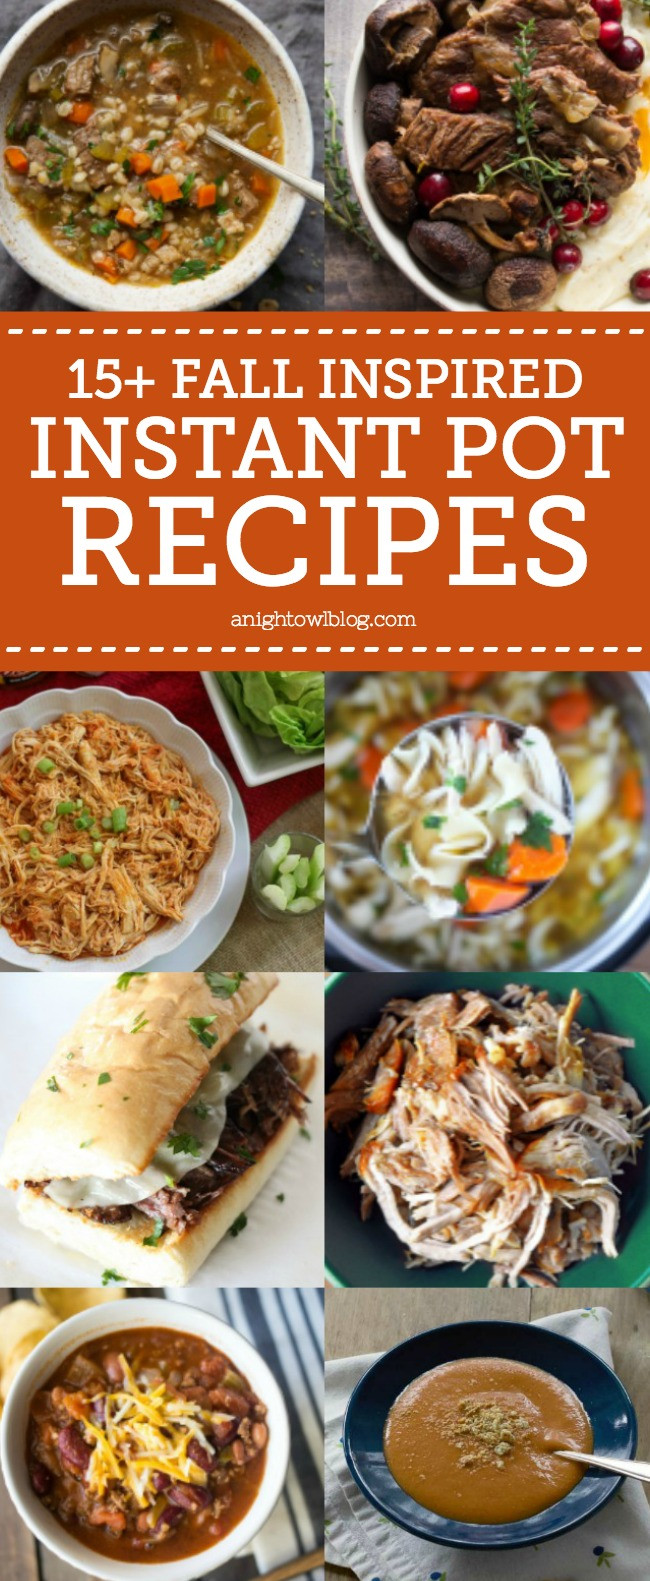 Instant Pot Fall Recipes  15 Fall Inspired Instant Pot Recipes